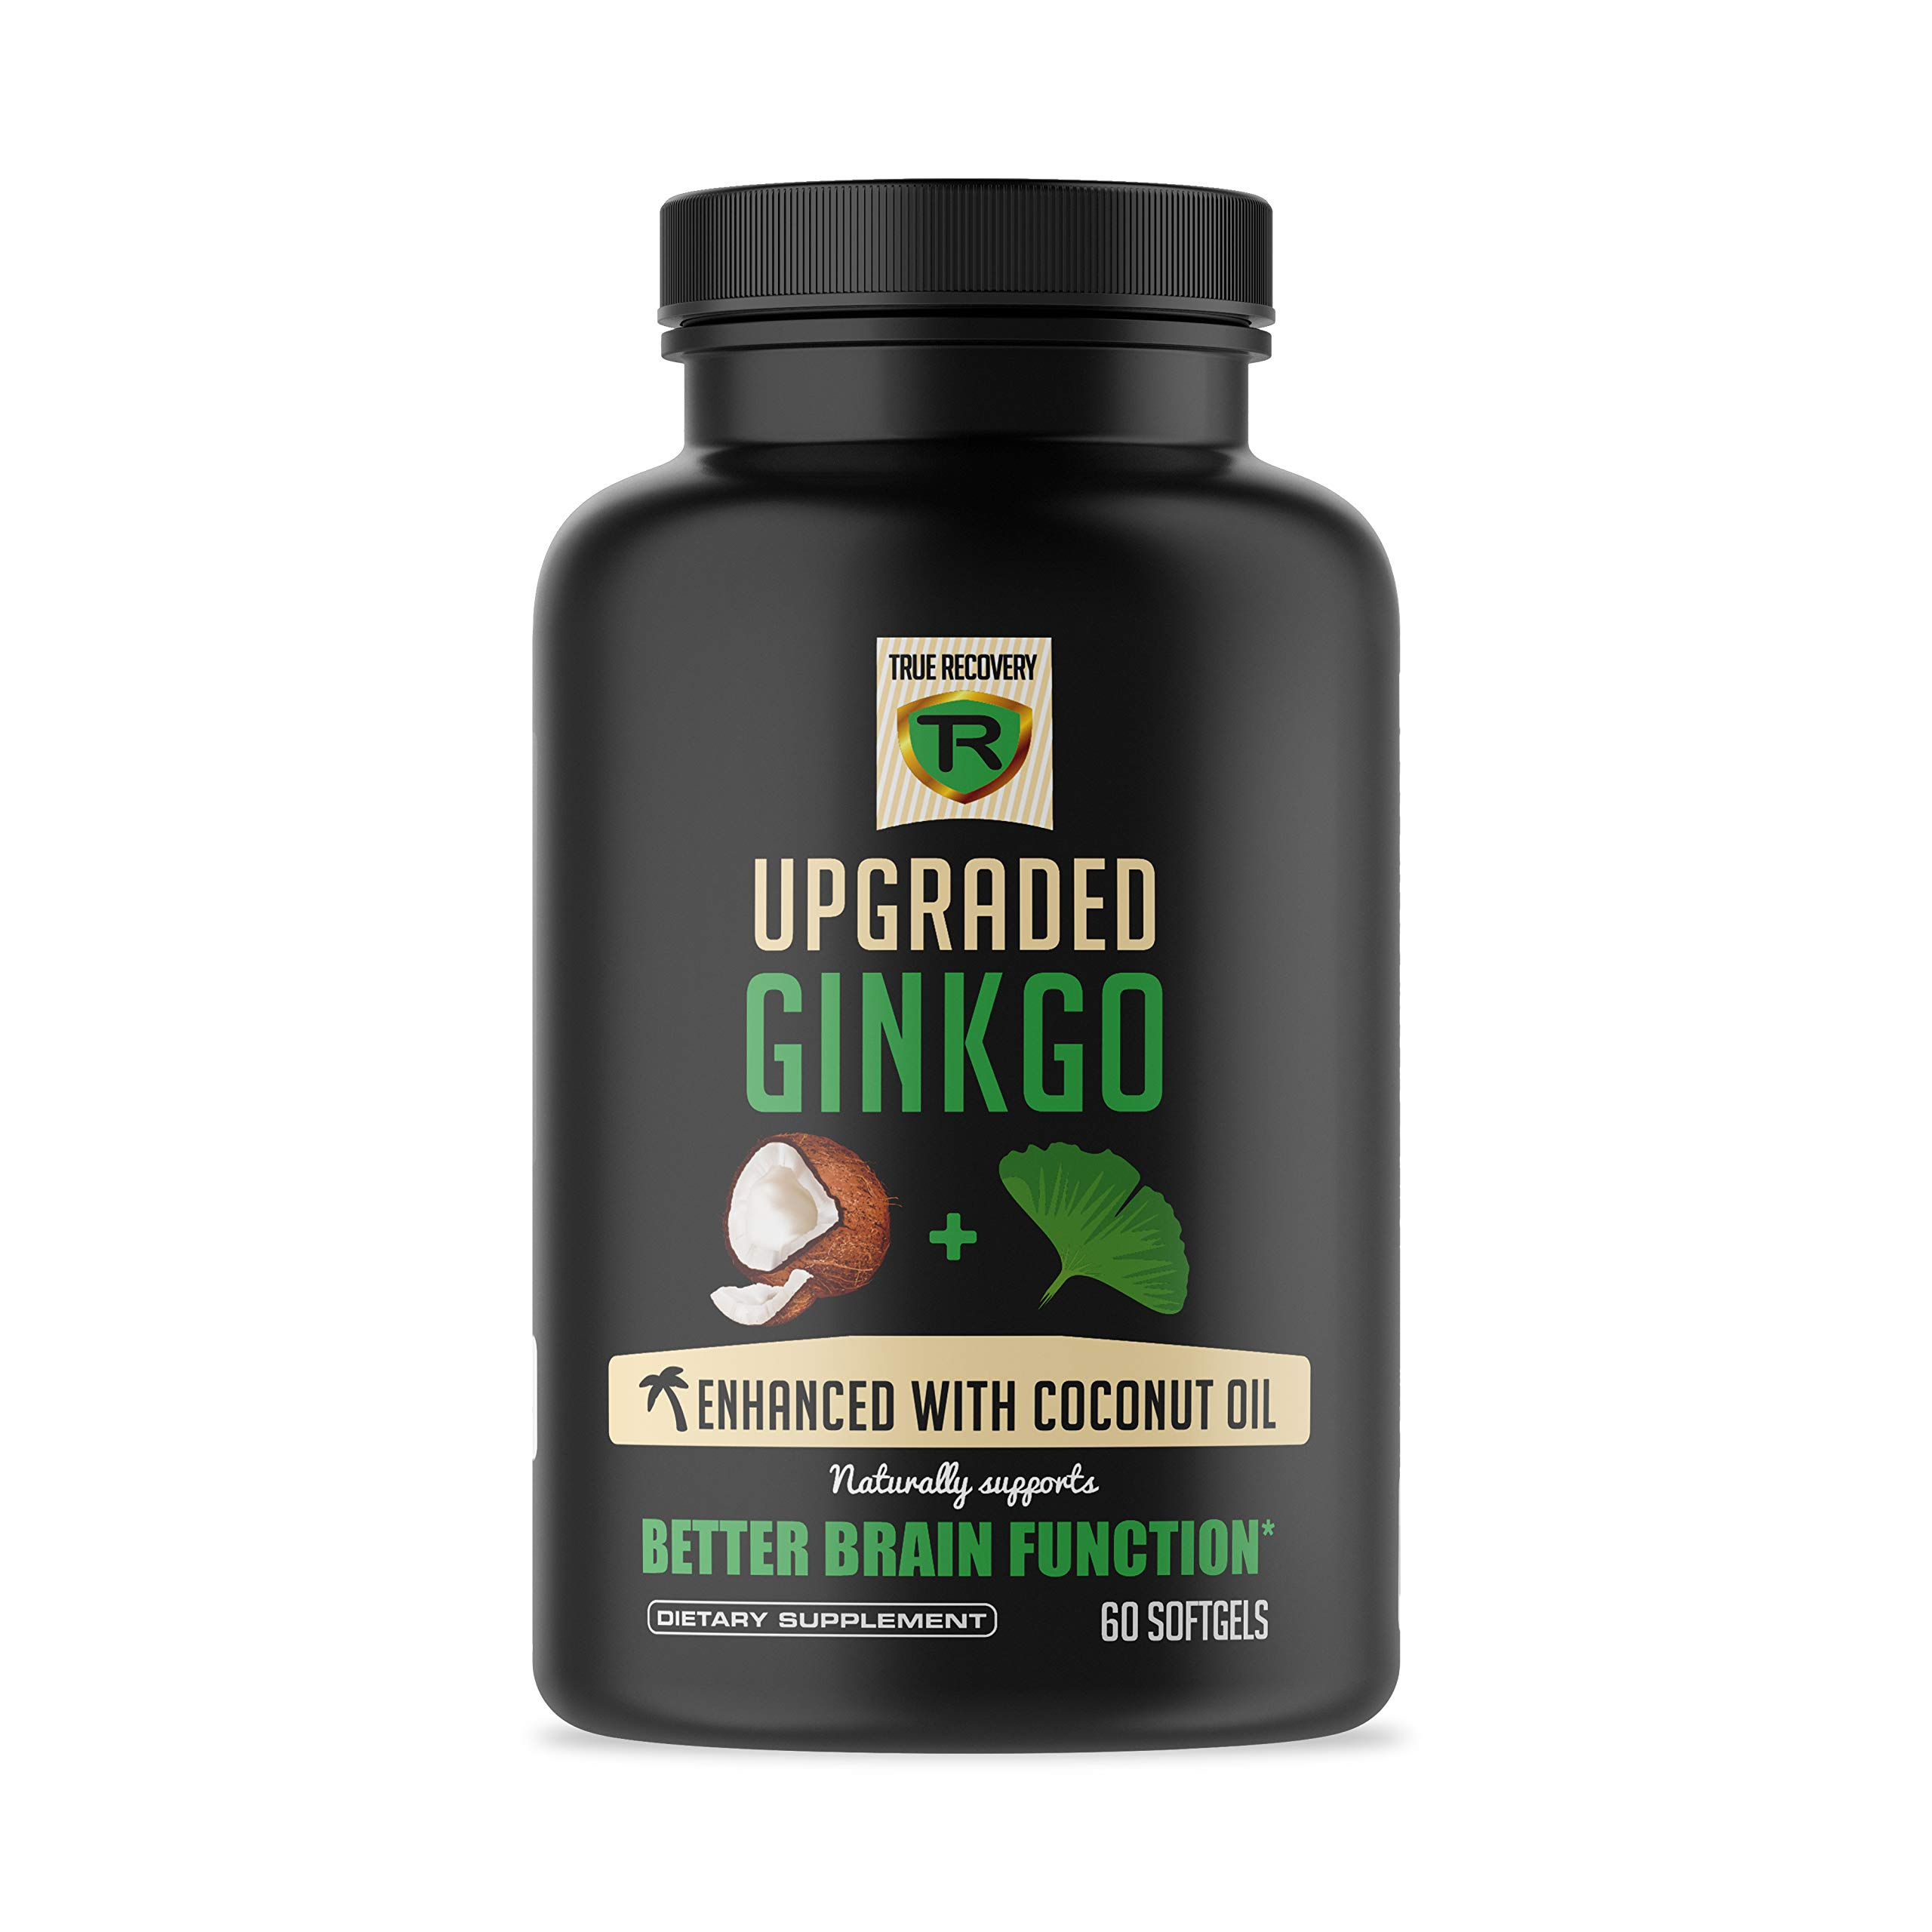 Extra Strength Ginkgo Biloba - Enhanced with Coconut Oil for Better Absorption - Brain Supplement Supports Focus, Memory, Brain Function & Mental Performance - Vegan, Non-GMO (60 Capsules) (Black)